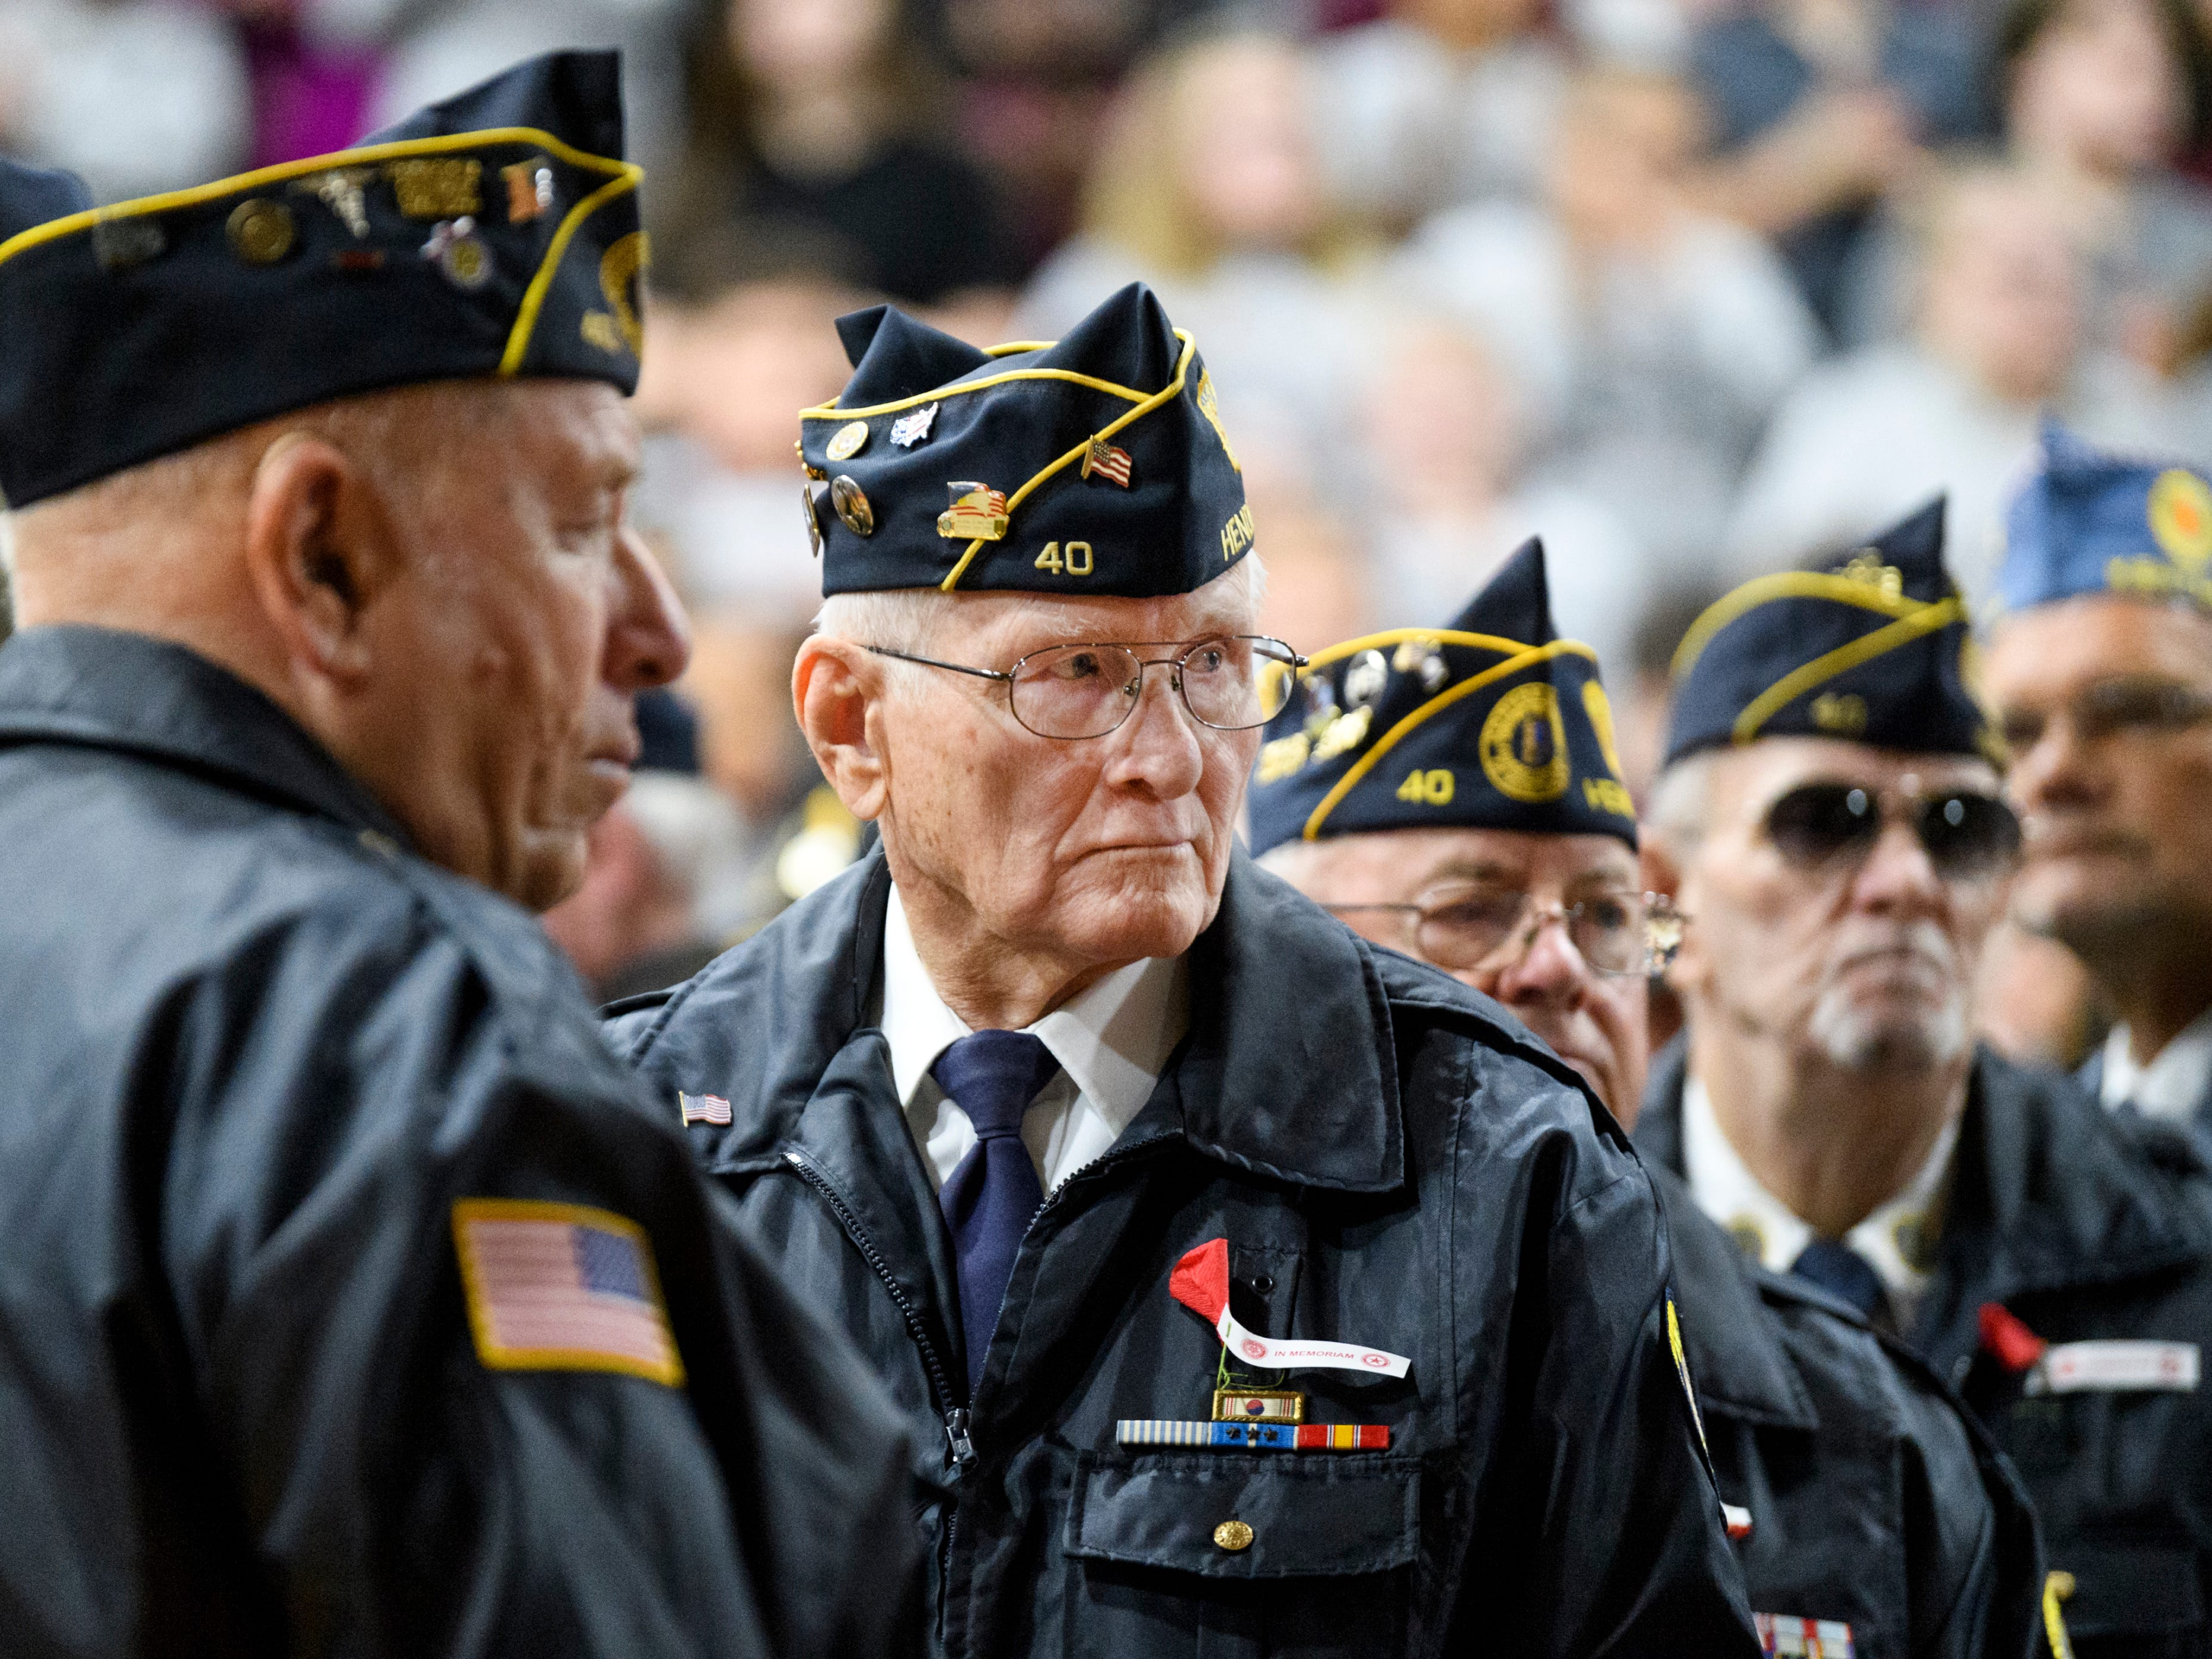 Bob G. Royster, second from left, and other members of the American Legion Worsham Post 40 Honor Guard attend the 38th annual Veteran's Day program at South Middle School in Henderson, Ky., Monday, Nov. 12, 2018.